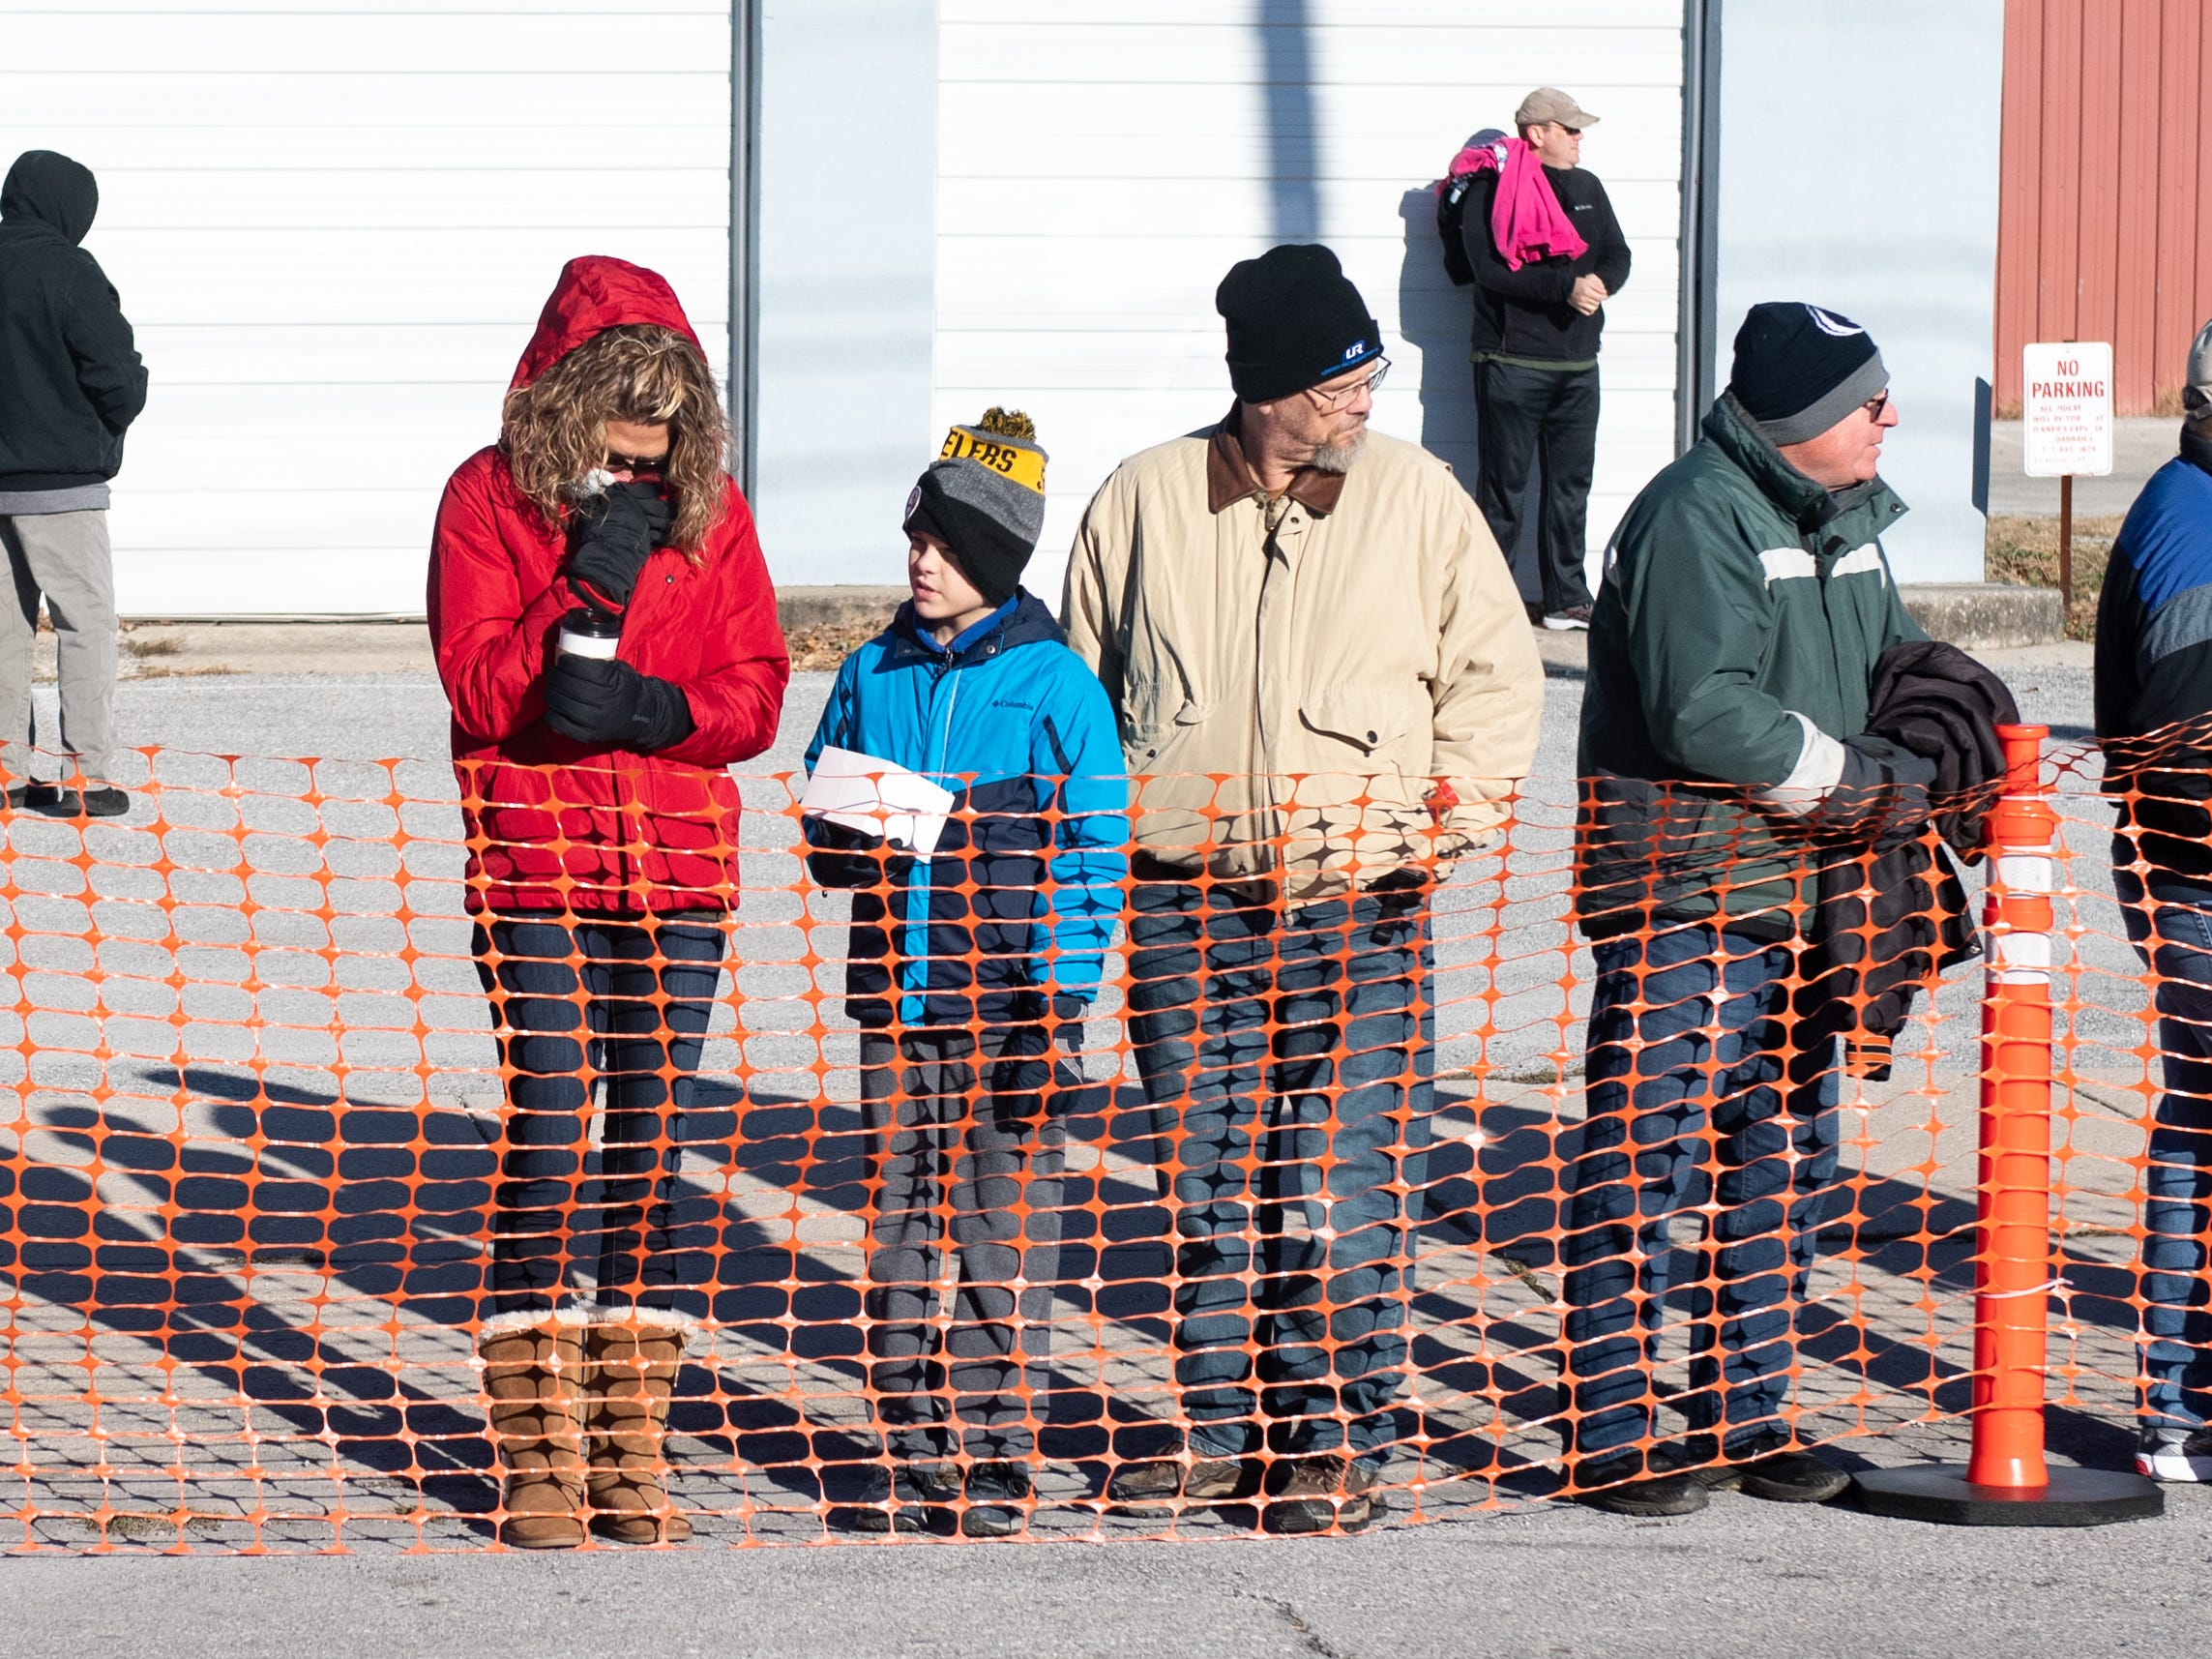 Onlookers spectate from the side of the road during the 22nd Annual Turkey Trot 5K, on Thanksgiving Day, November 22, 2018.